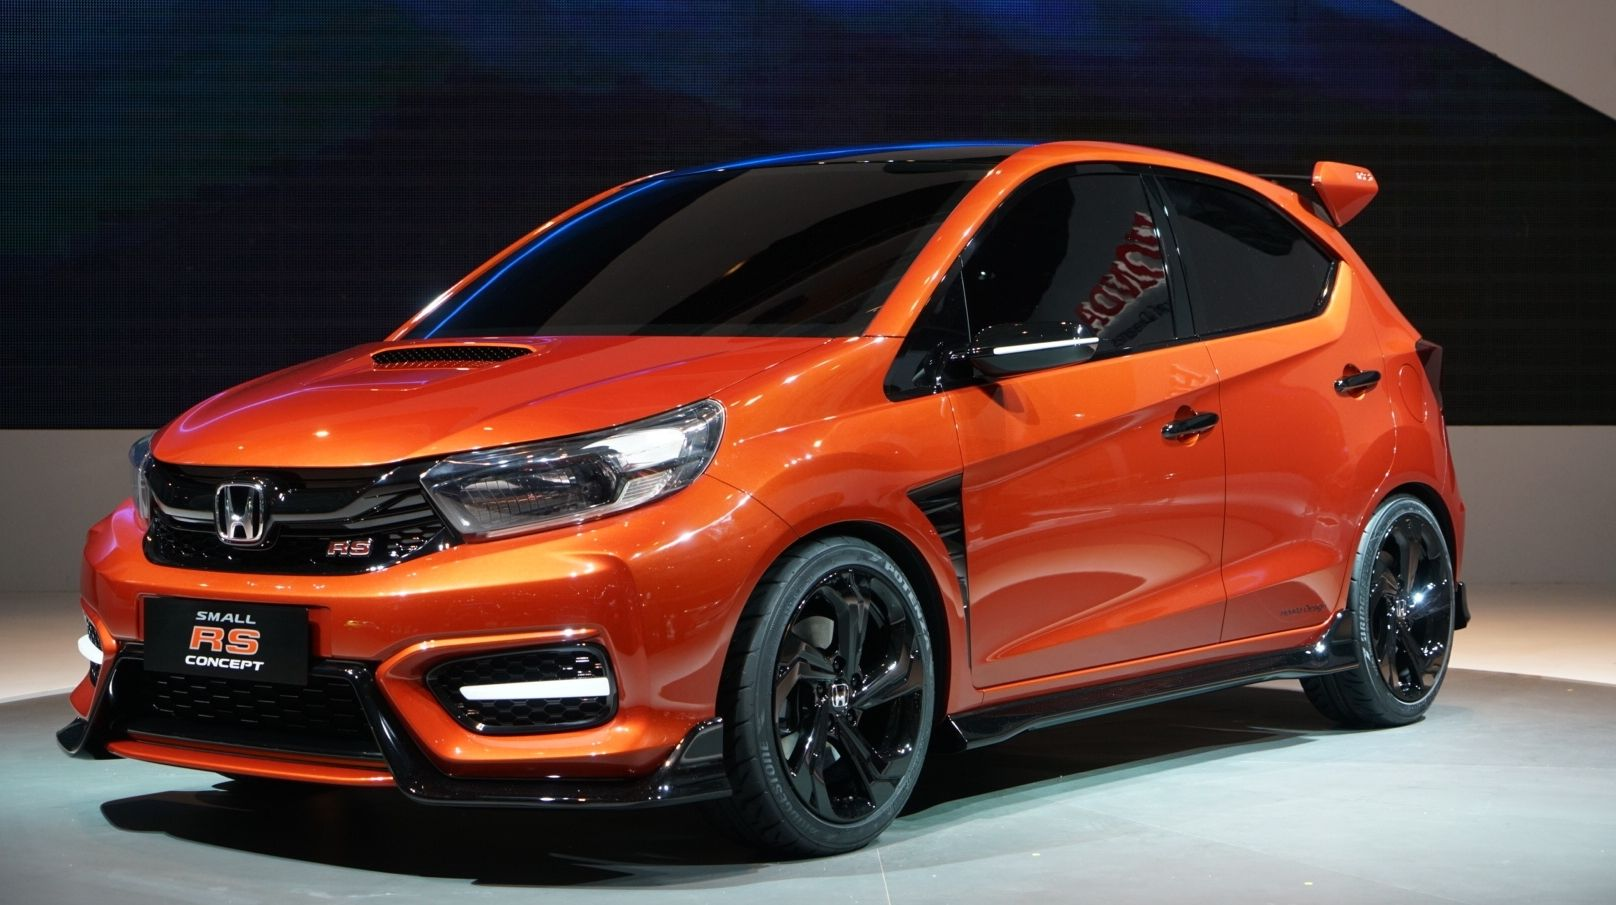 The Honda Small Rs Concept Is Indonesia S Solution For A Tiny Civic Type R Mobil Keren Mobil Honda